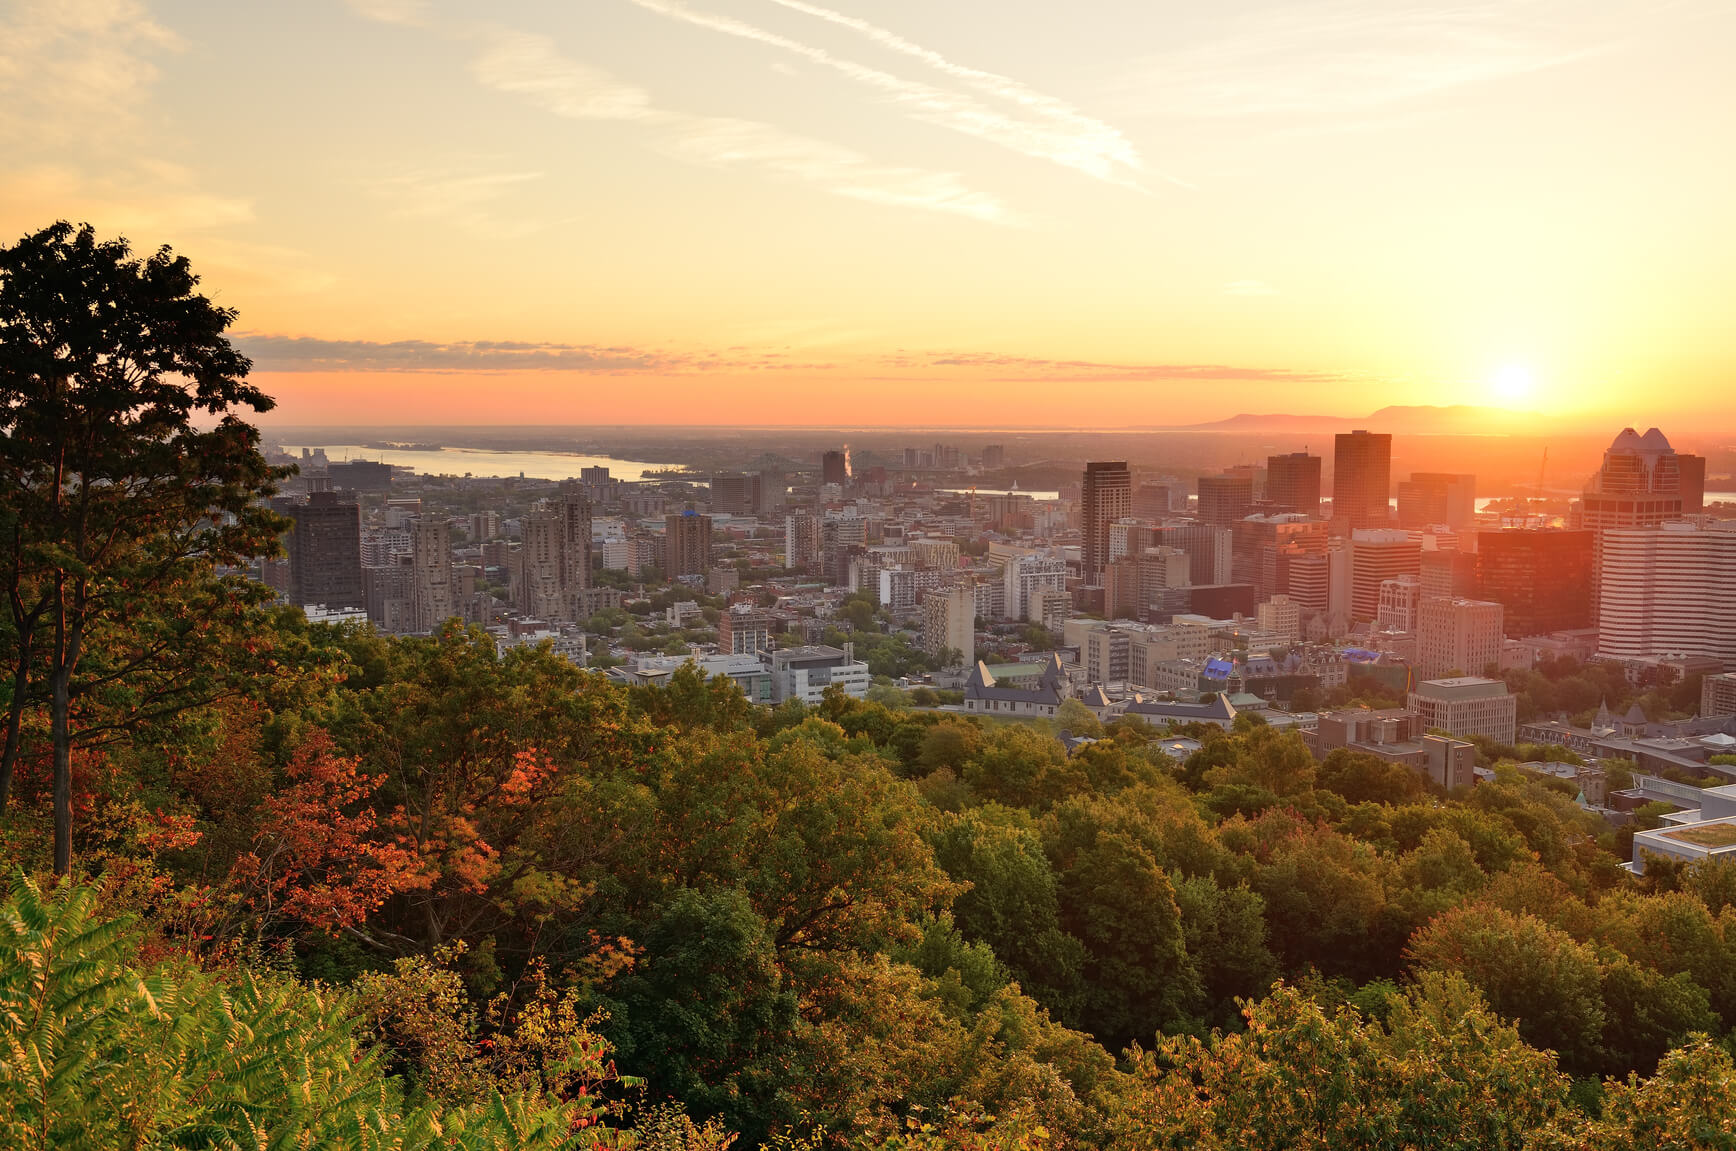 Non-stop from Paris, France to Montreal, Canada for only €232 roundtrip (Sep dates)